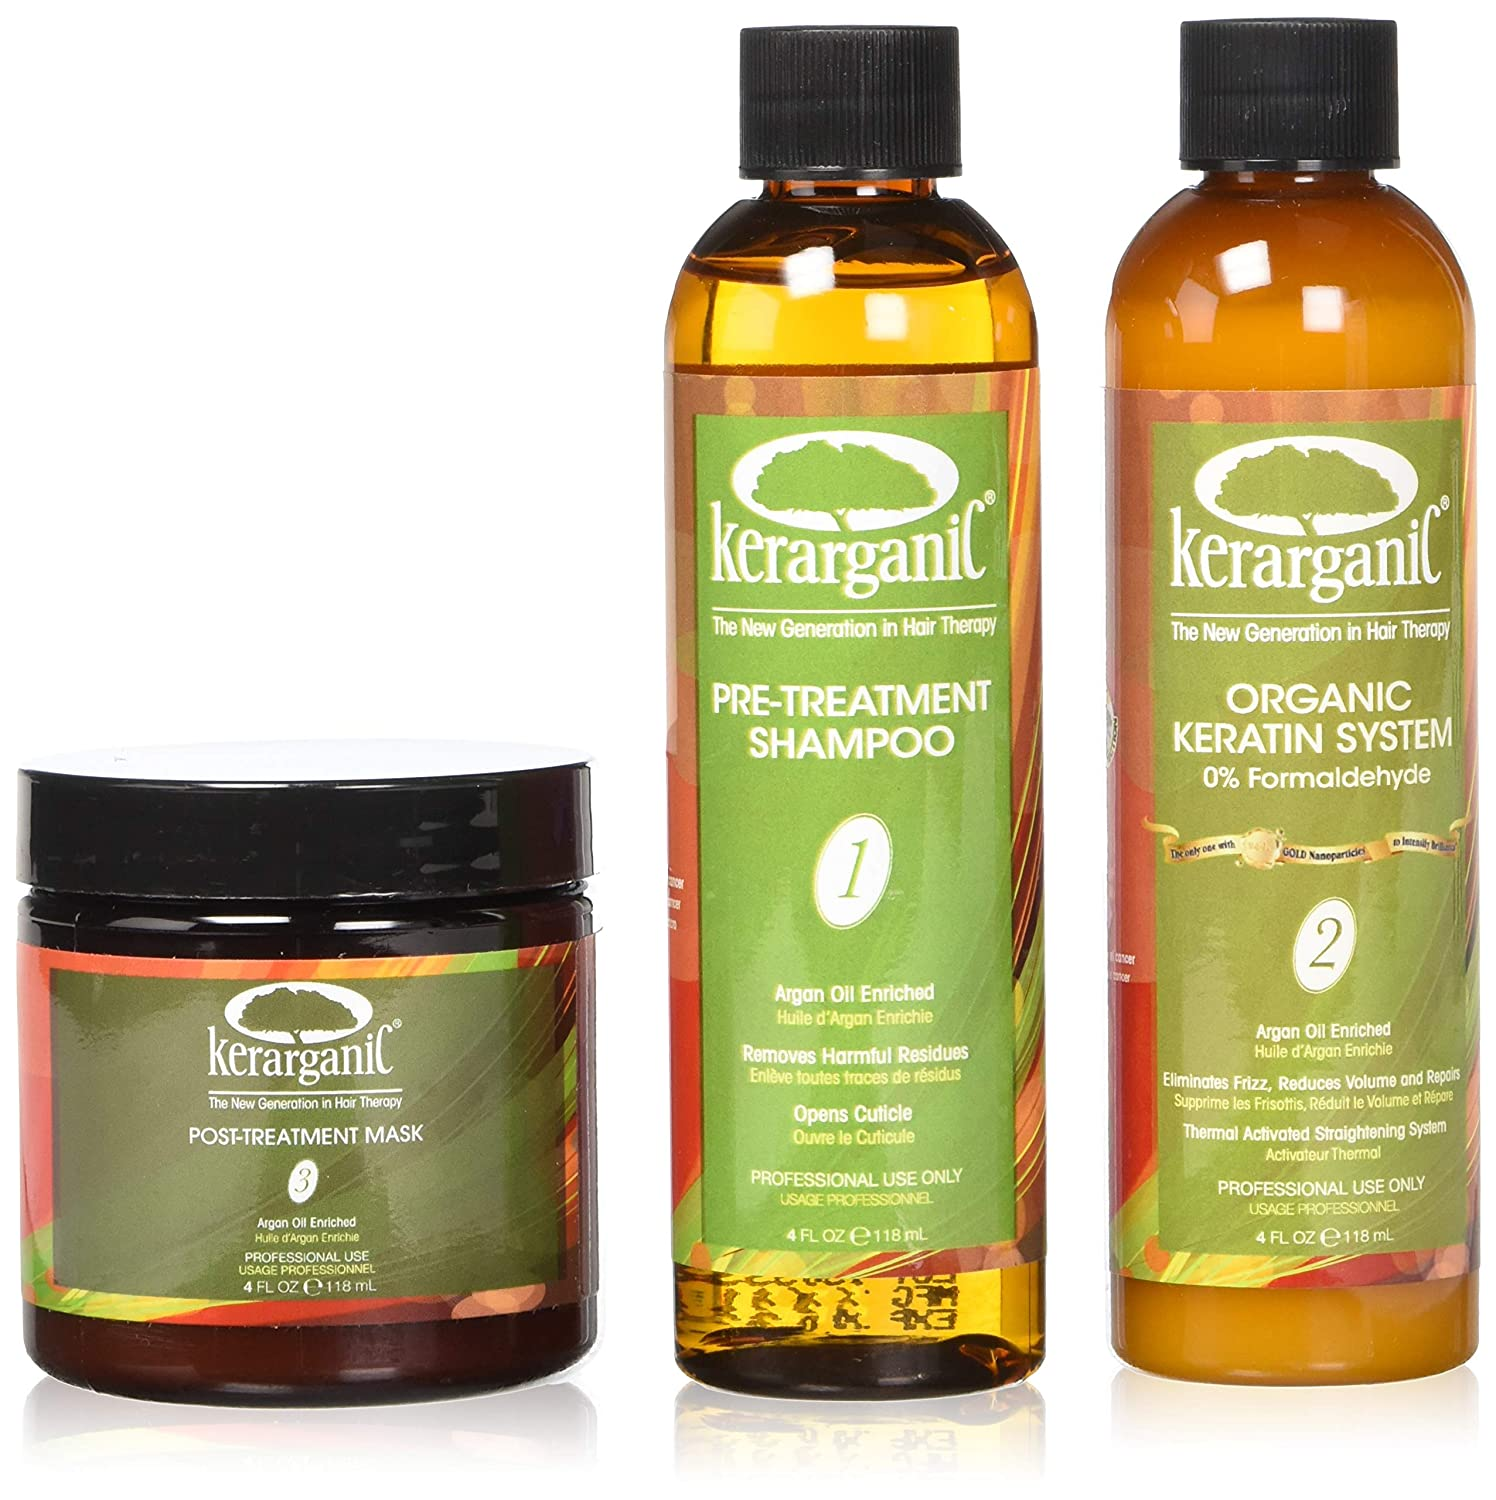 KERARGANIC KERATIN TREATMENT SET - ORGANIC - FORMALDEHYDE FREE - 4oz Kit